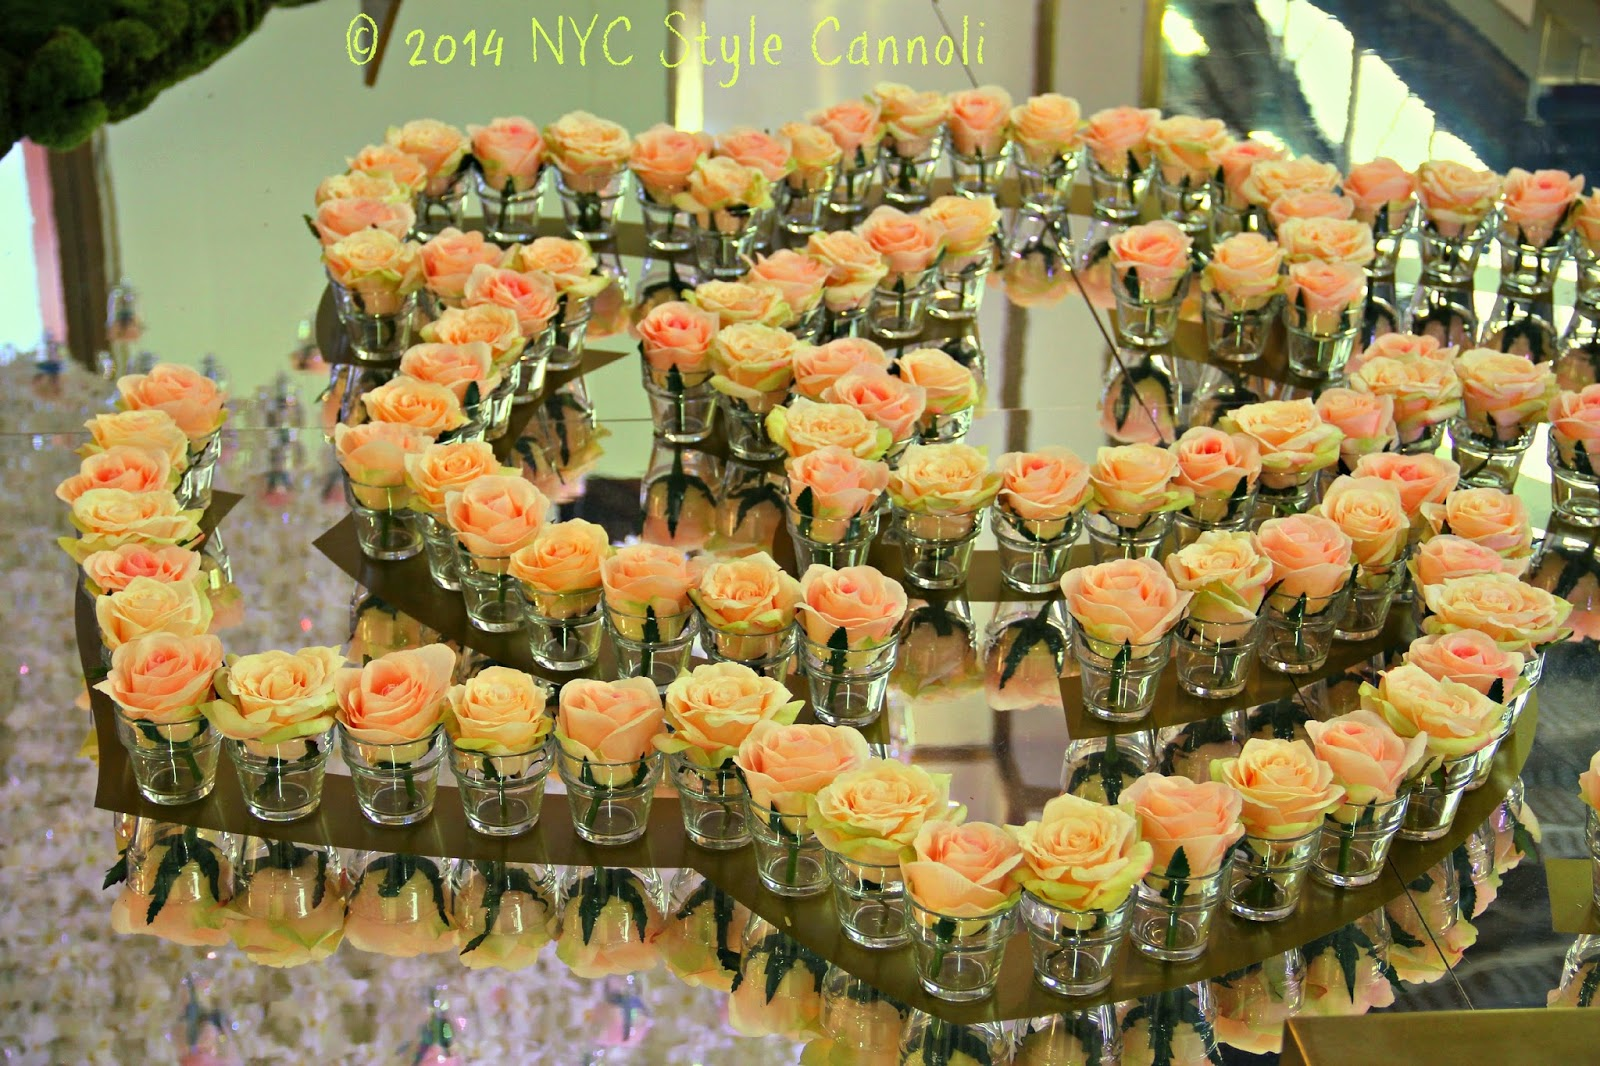 nyc style and a little cannoli lori morris design at the 2014